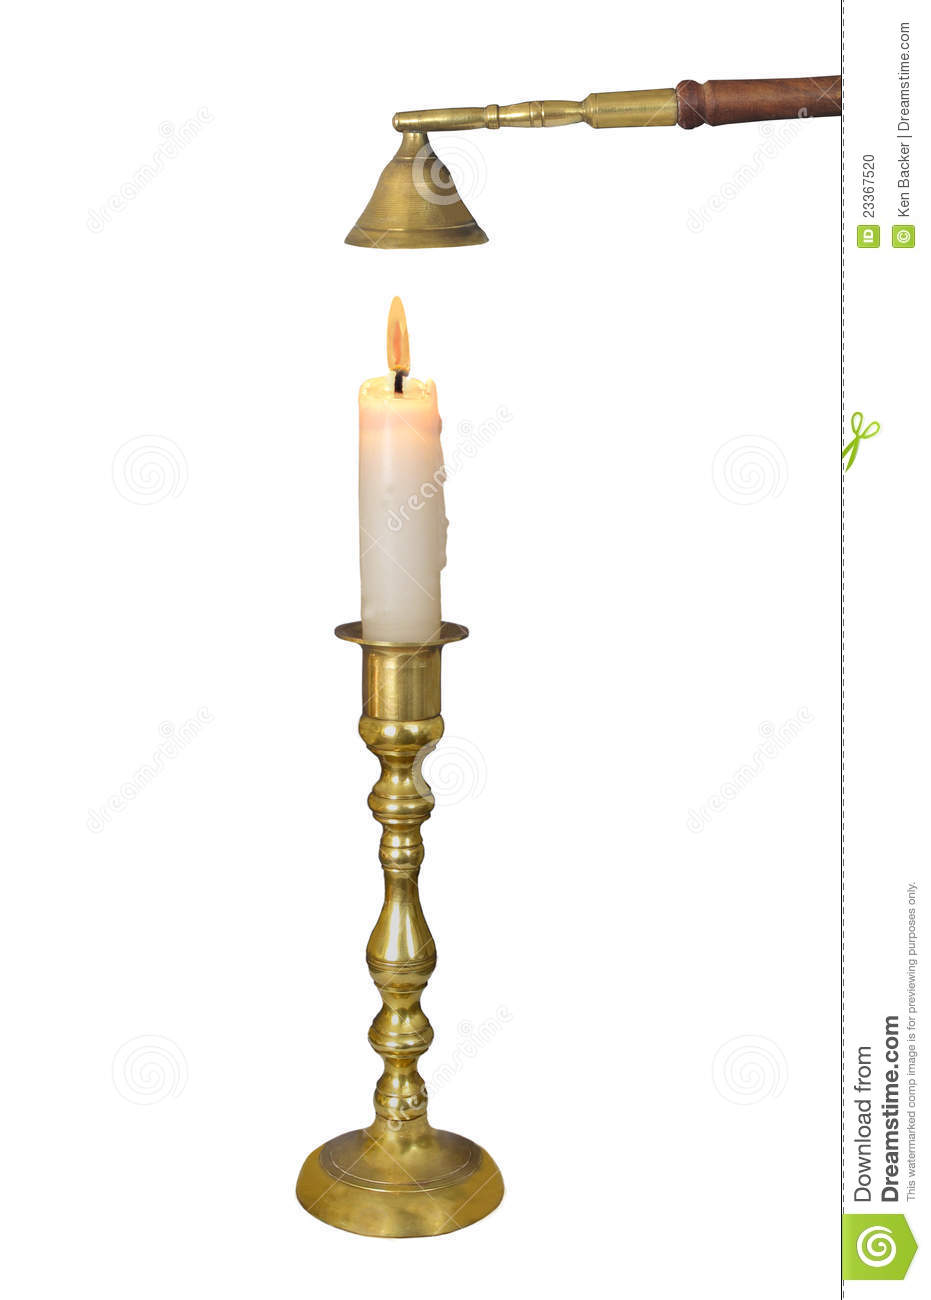 Brass candlestick with candle isolated.